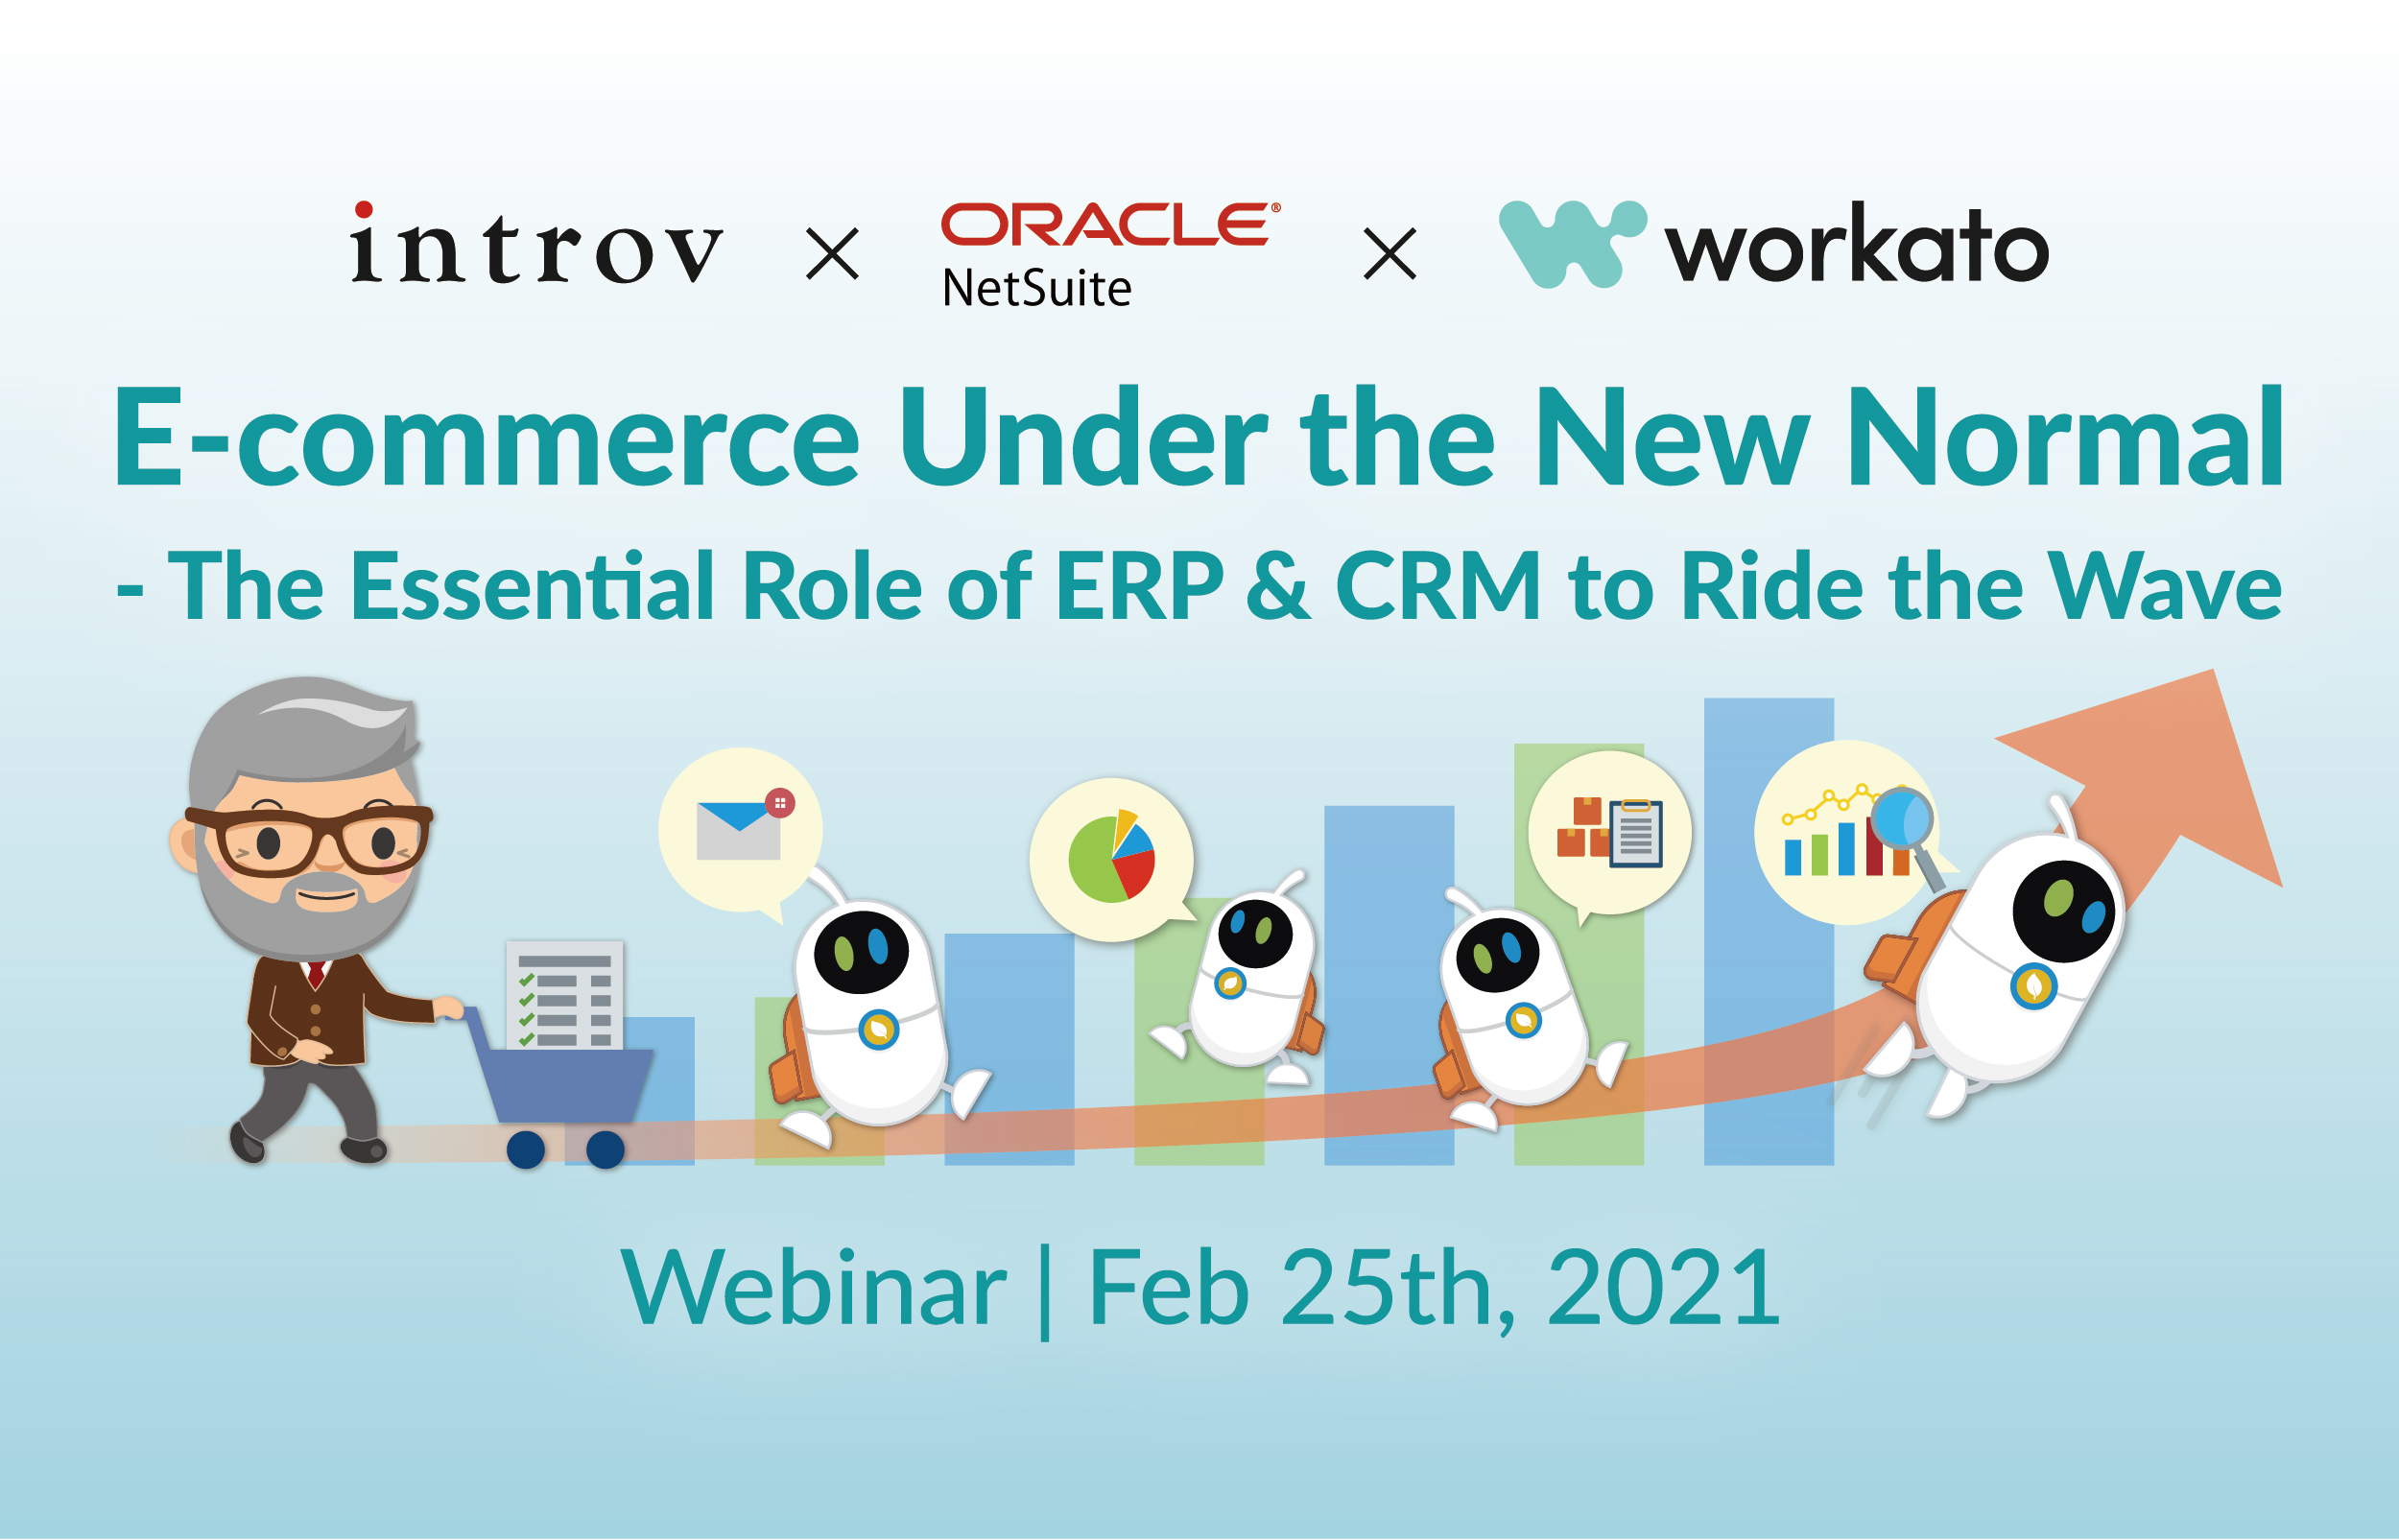 Webinar: E-commerce Under the New Normal – The Essential Role of ERP & CRM to Ride the Wave (February 25th, 2021)